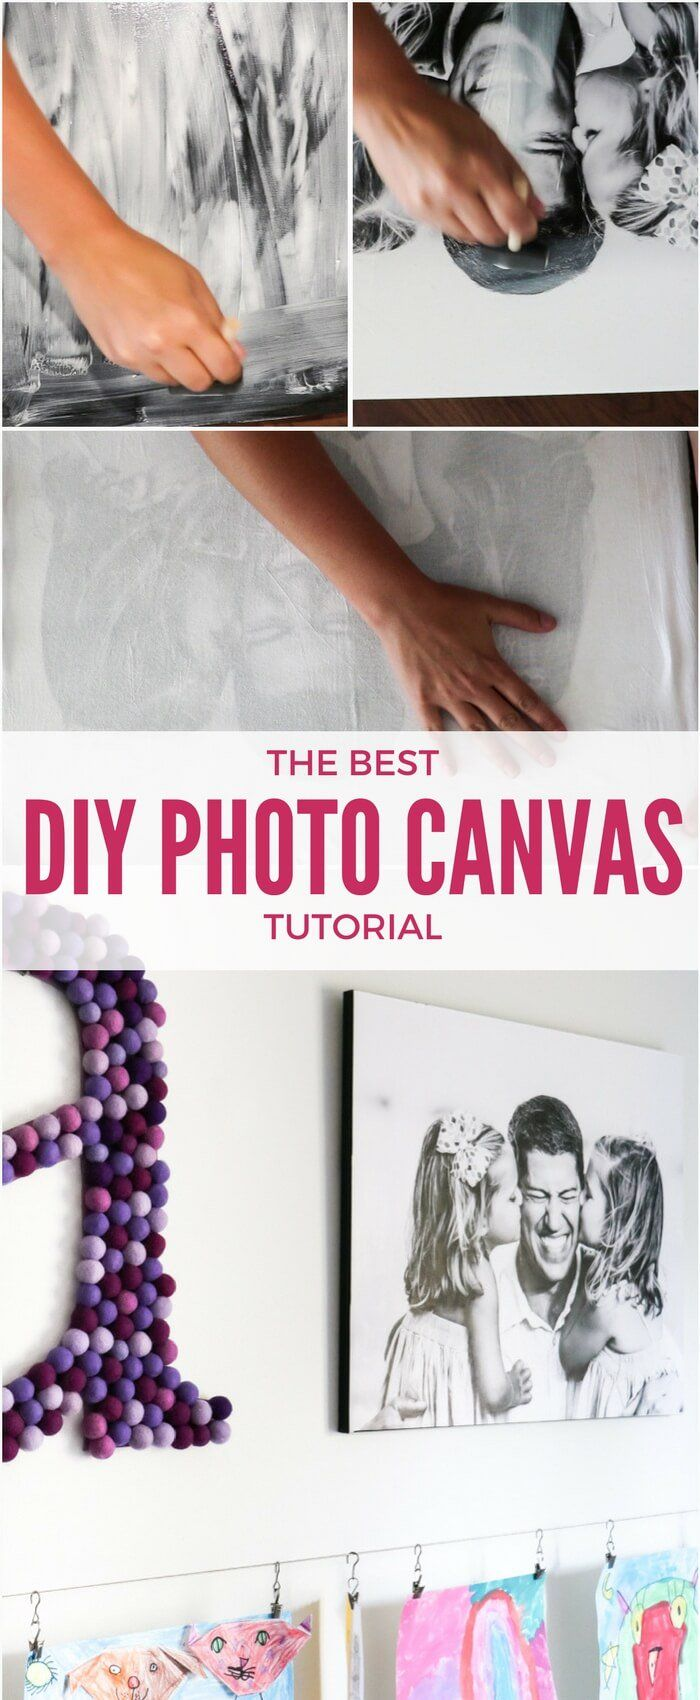 If you love the look of photo canvases, but can't believe how expensive they are, this is the DIY tutorial for you! Learn how to make your own photo canvas prints for a FRACTION of custom ordered photo canvases from stores!